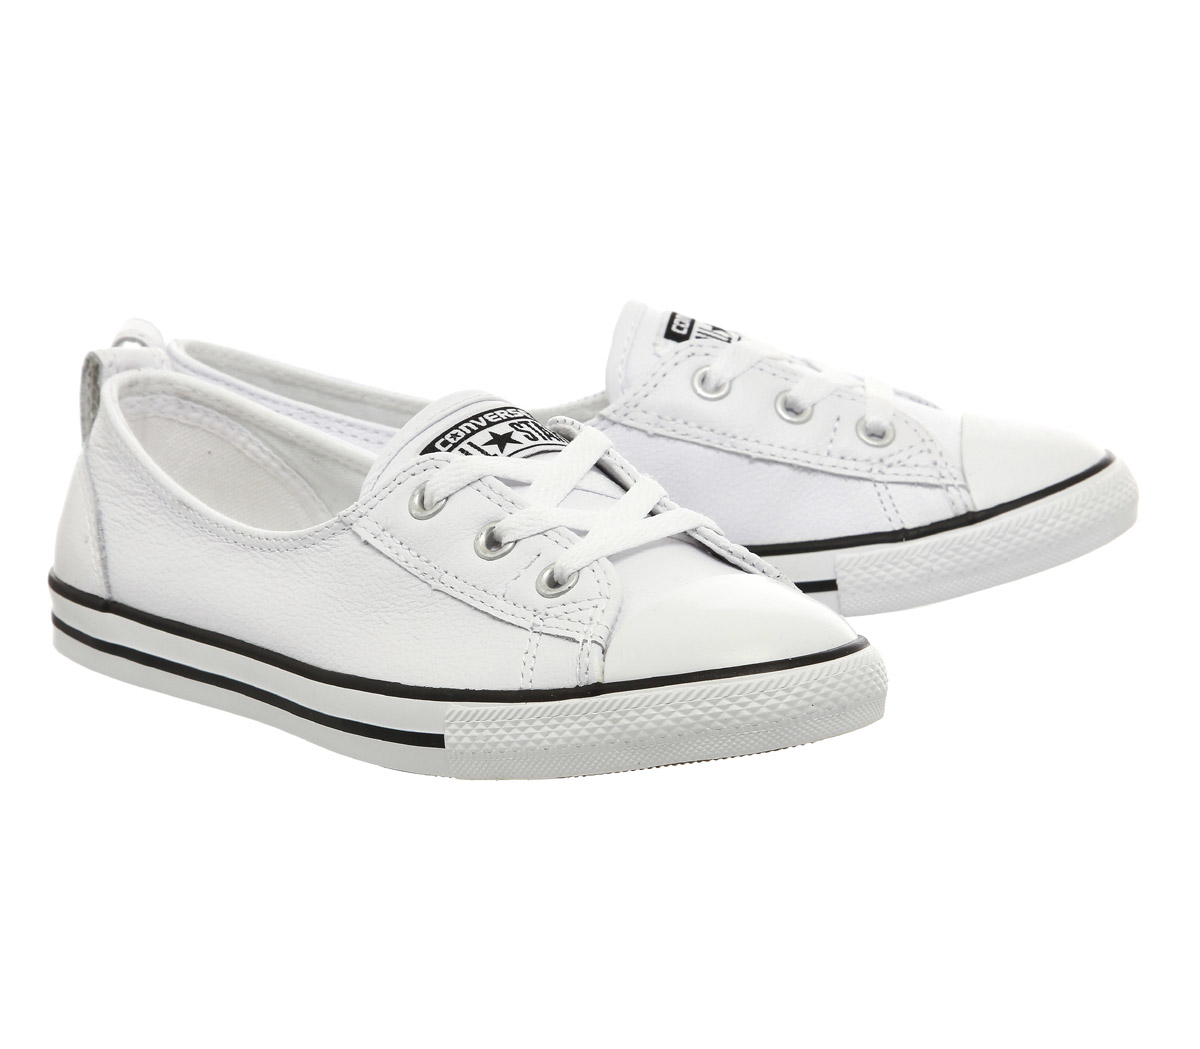 a1f3f862a880 Converse Ctas Ballet Lace Leather in White - Lyst